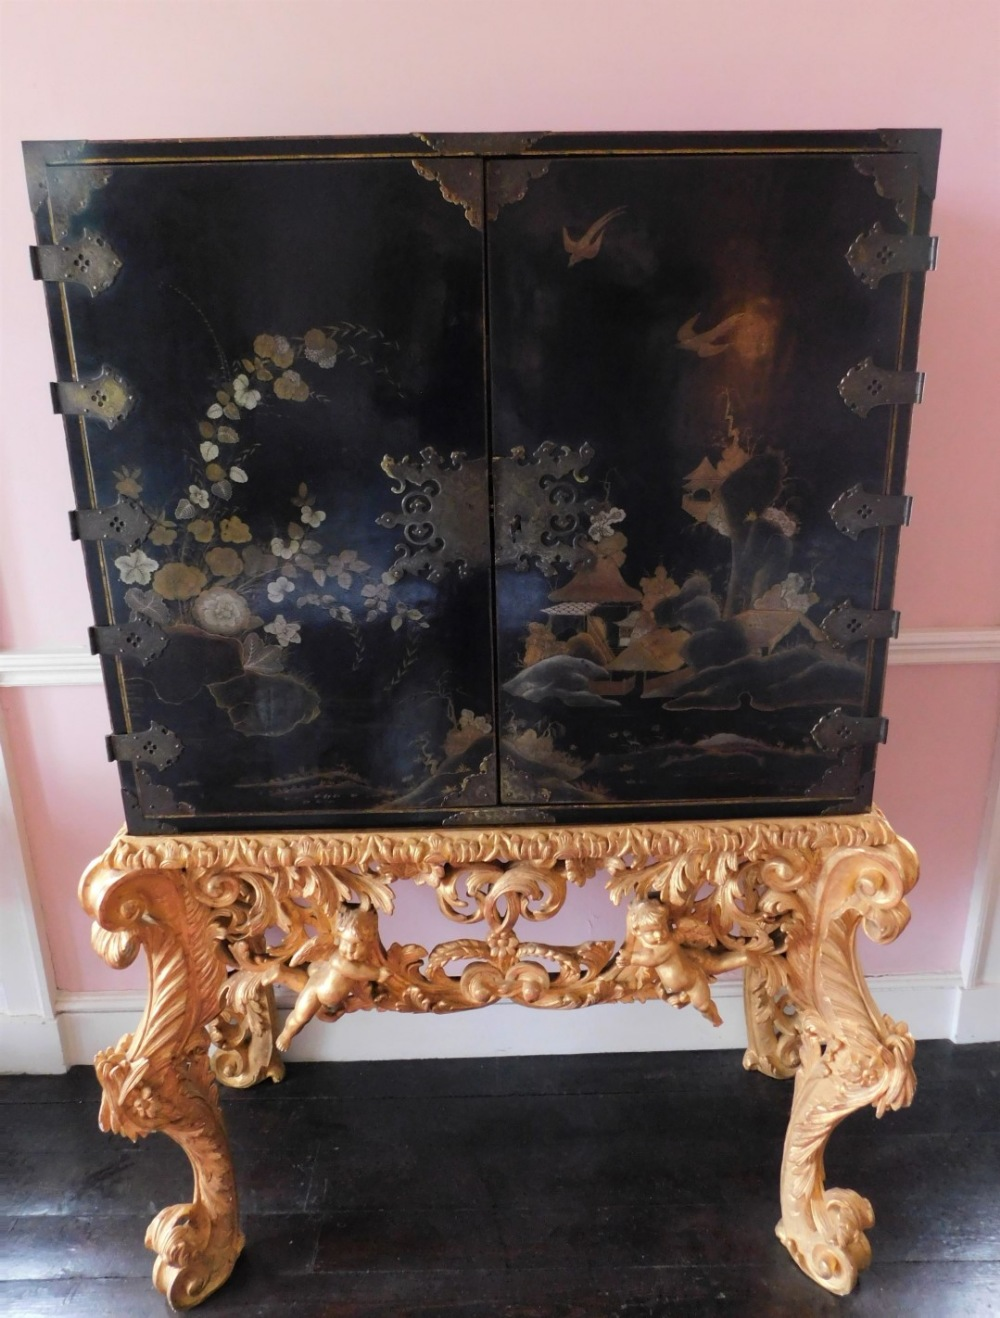 A late 17th/early 18thC Japanned cabinet, decorated in gilt and silver with flowers, buildings, etc.